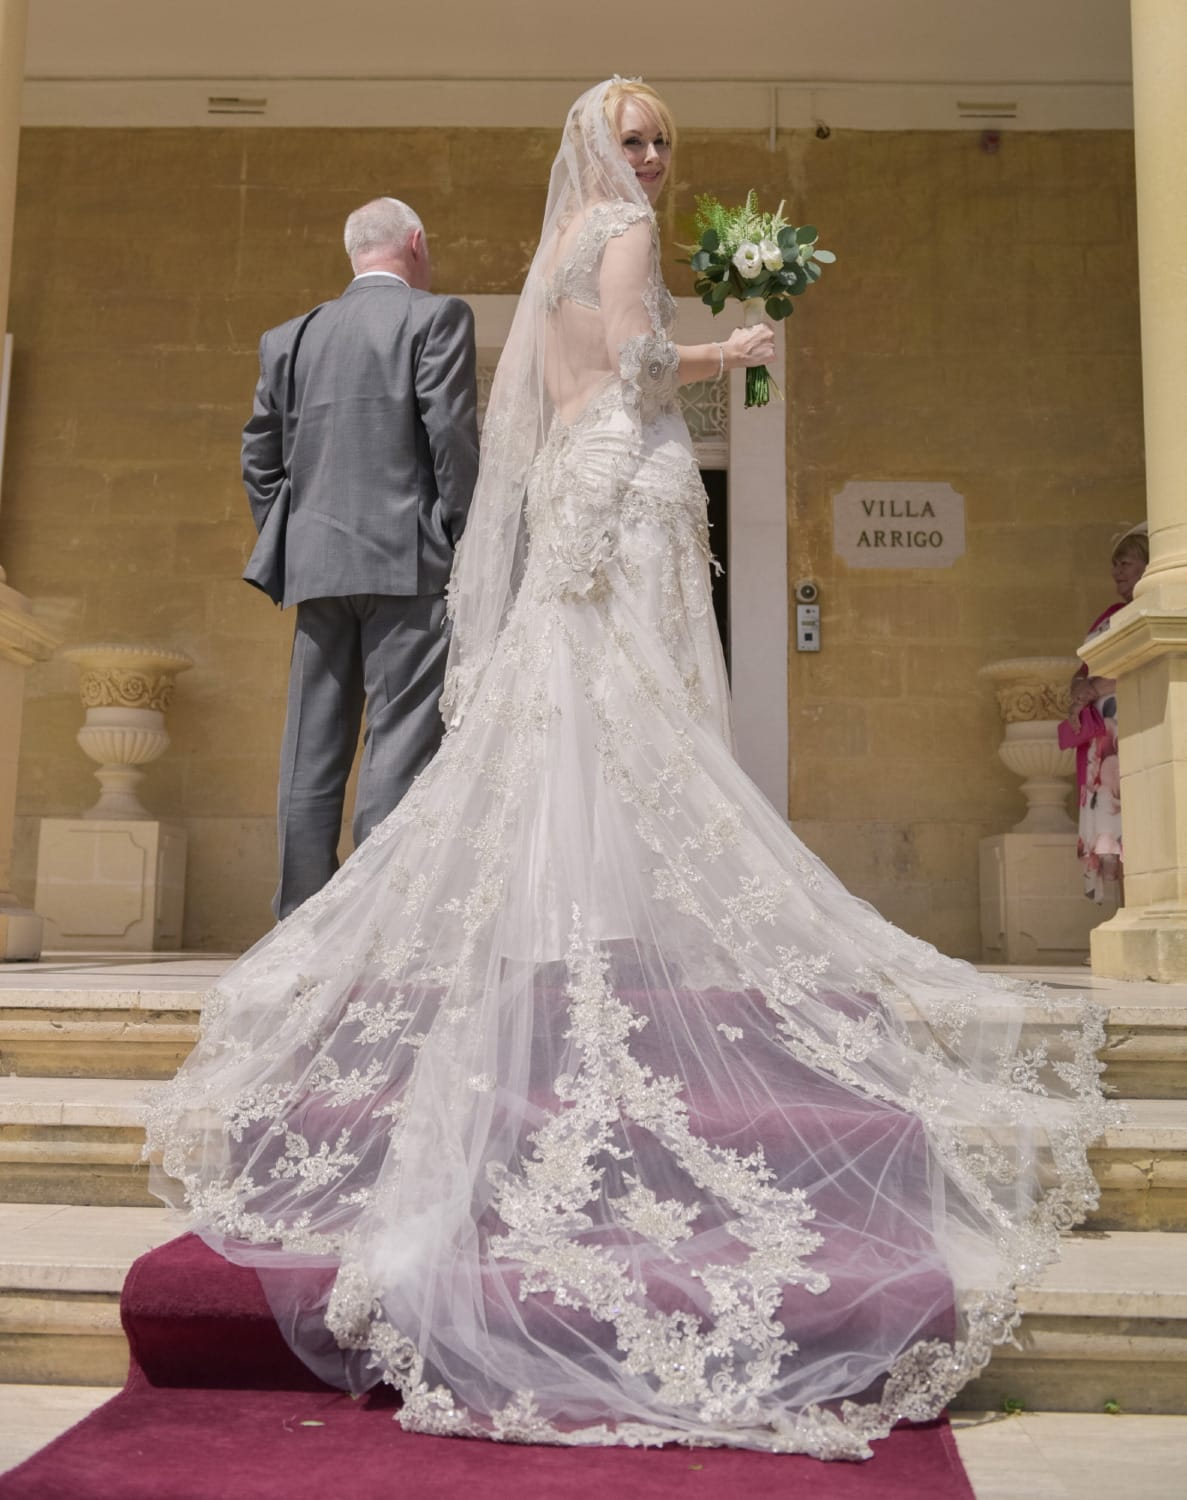 Farage vintage show stopper sell my wedding dress online for Sell vintage wedding dress